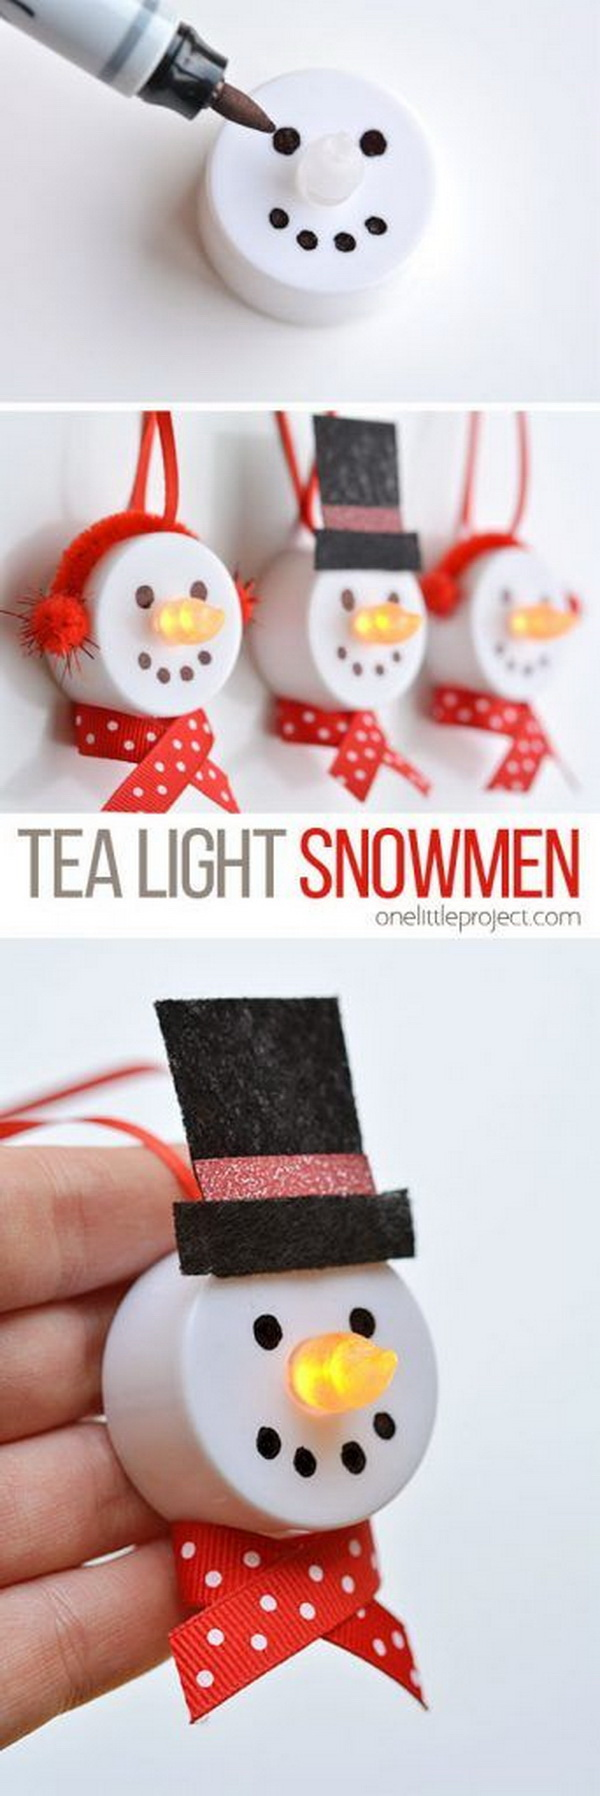 Tea Light Snowman Ornaments. What a fun Christmas craft project to use the dollar store tea lights to light up snowman nose! Easy and Fun DIY Christmas crafts for You and Your Kids to Have Fun.